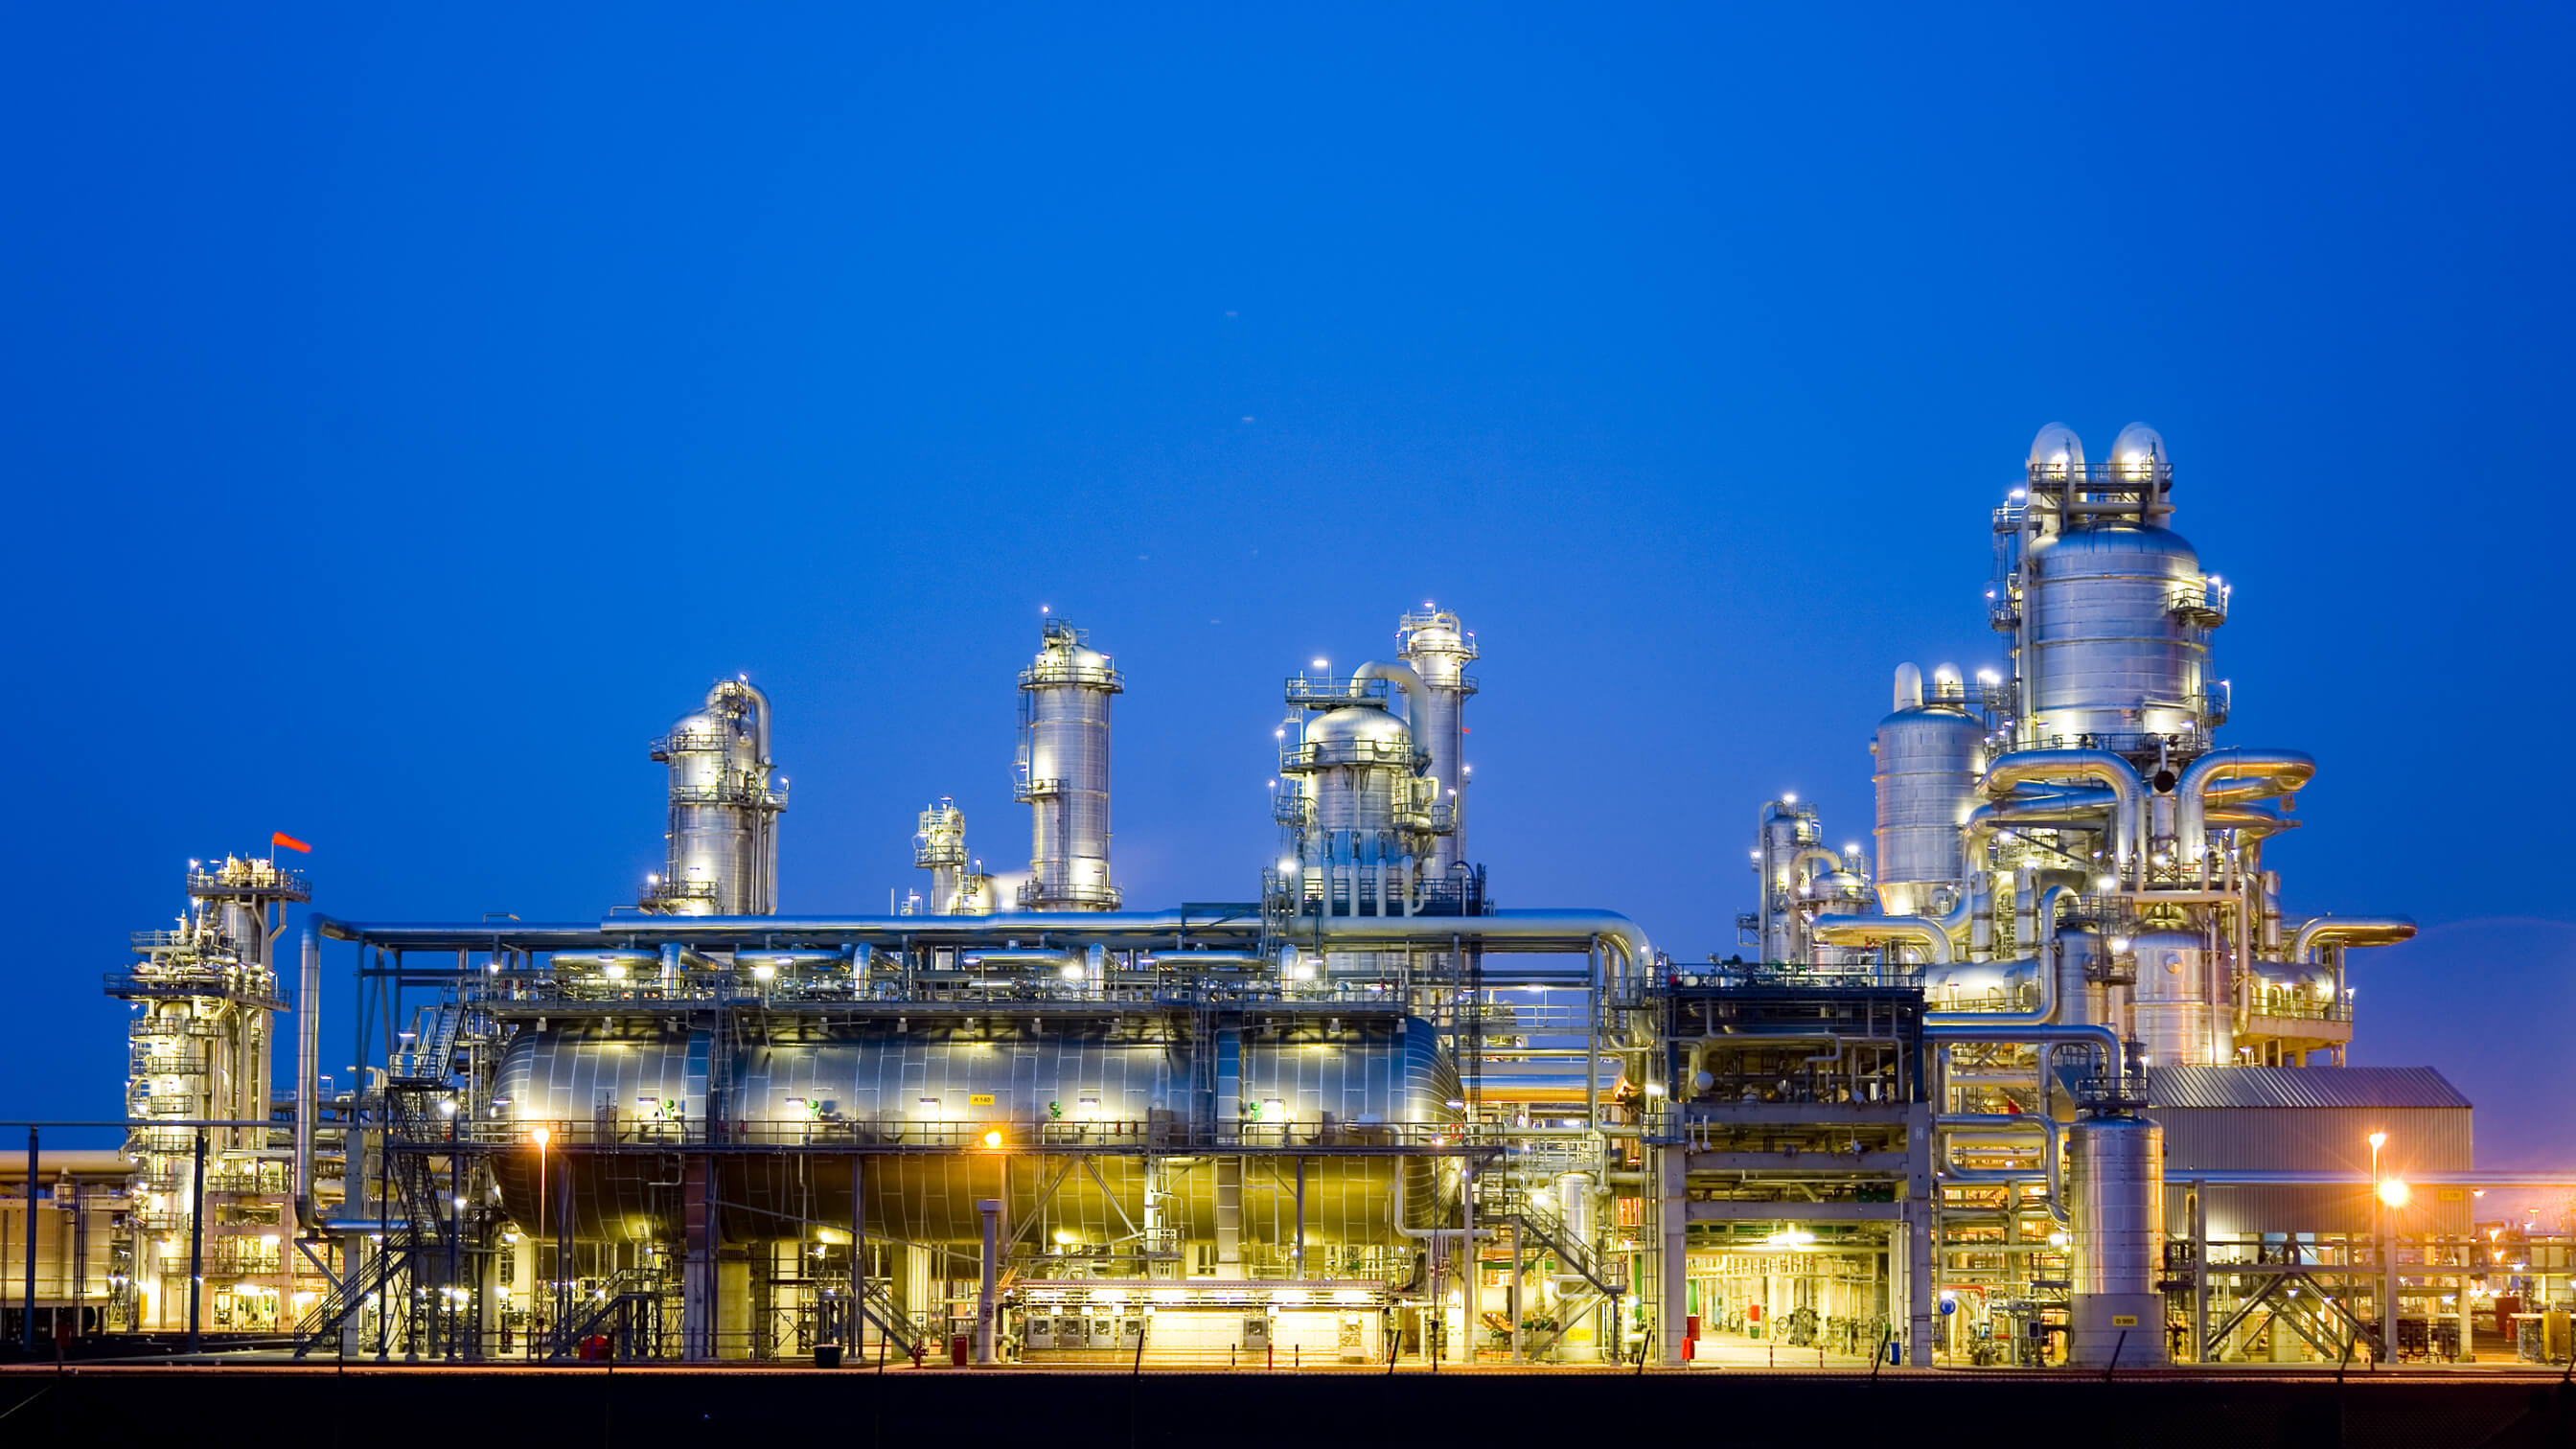 Petrochemical refinery lit up at night